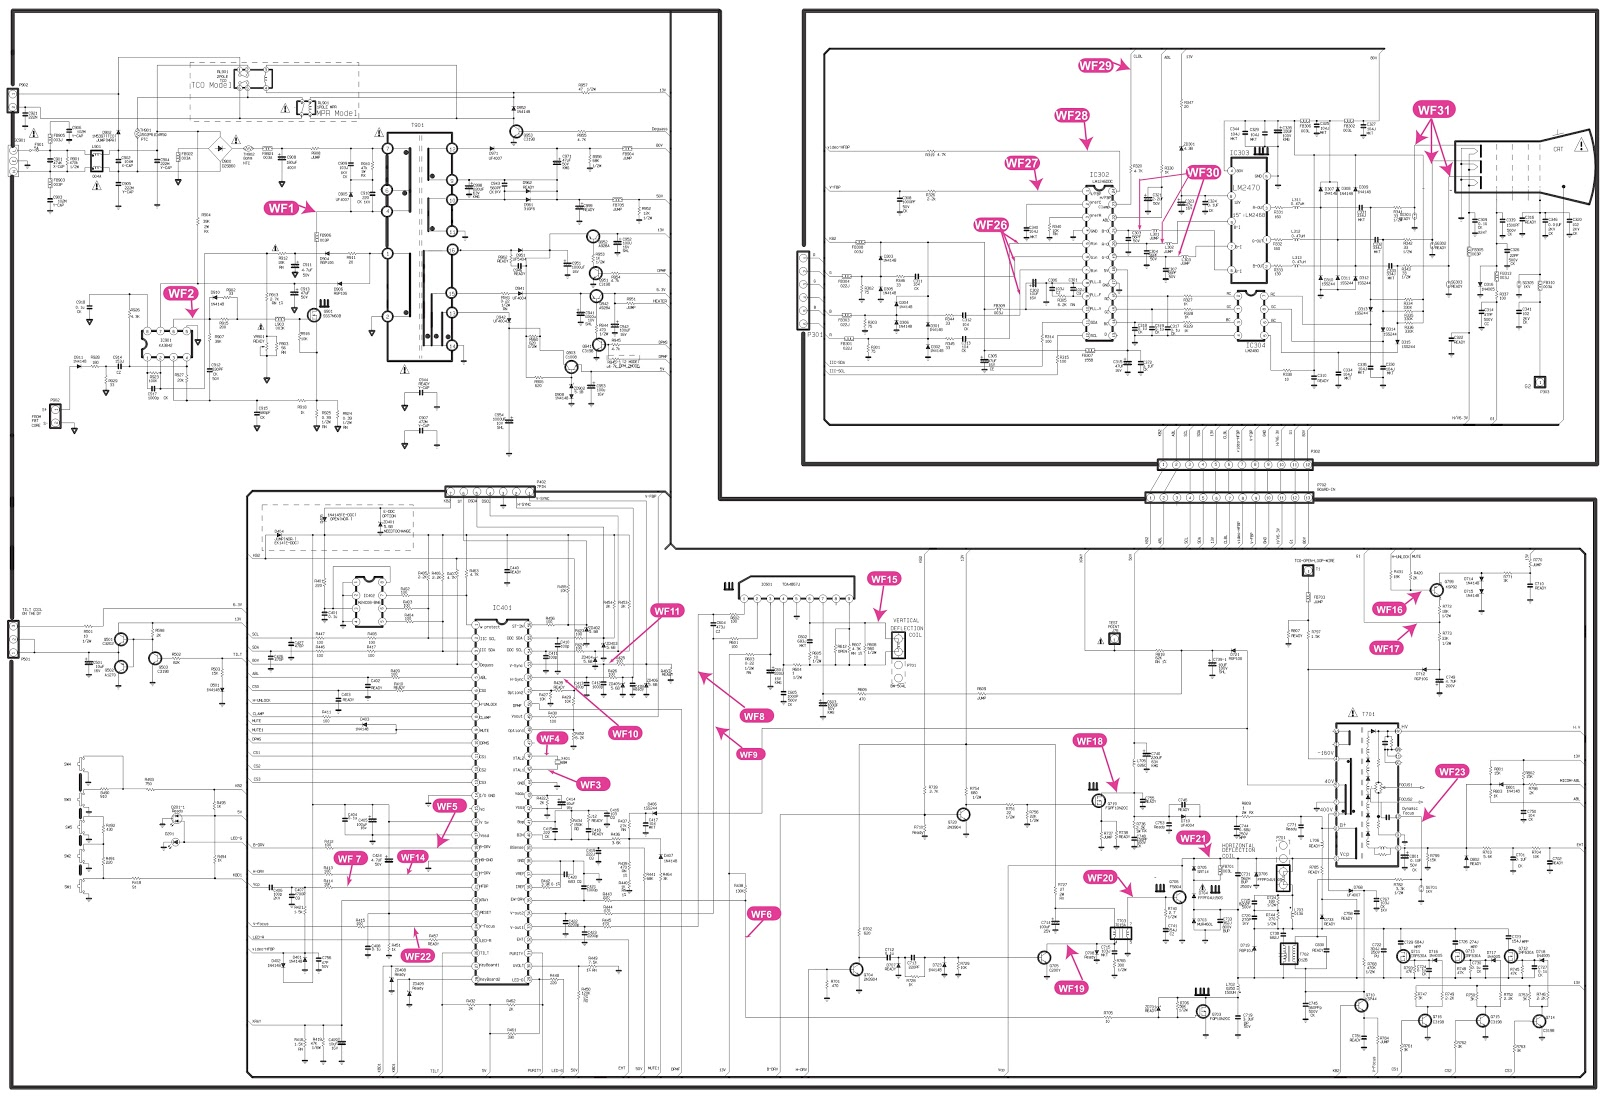 FIG 1 crt monitor block diagram electronics repair and technology news monitor wiring diagram for cat 320l excavator at couponss.co